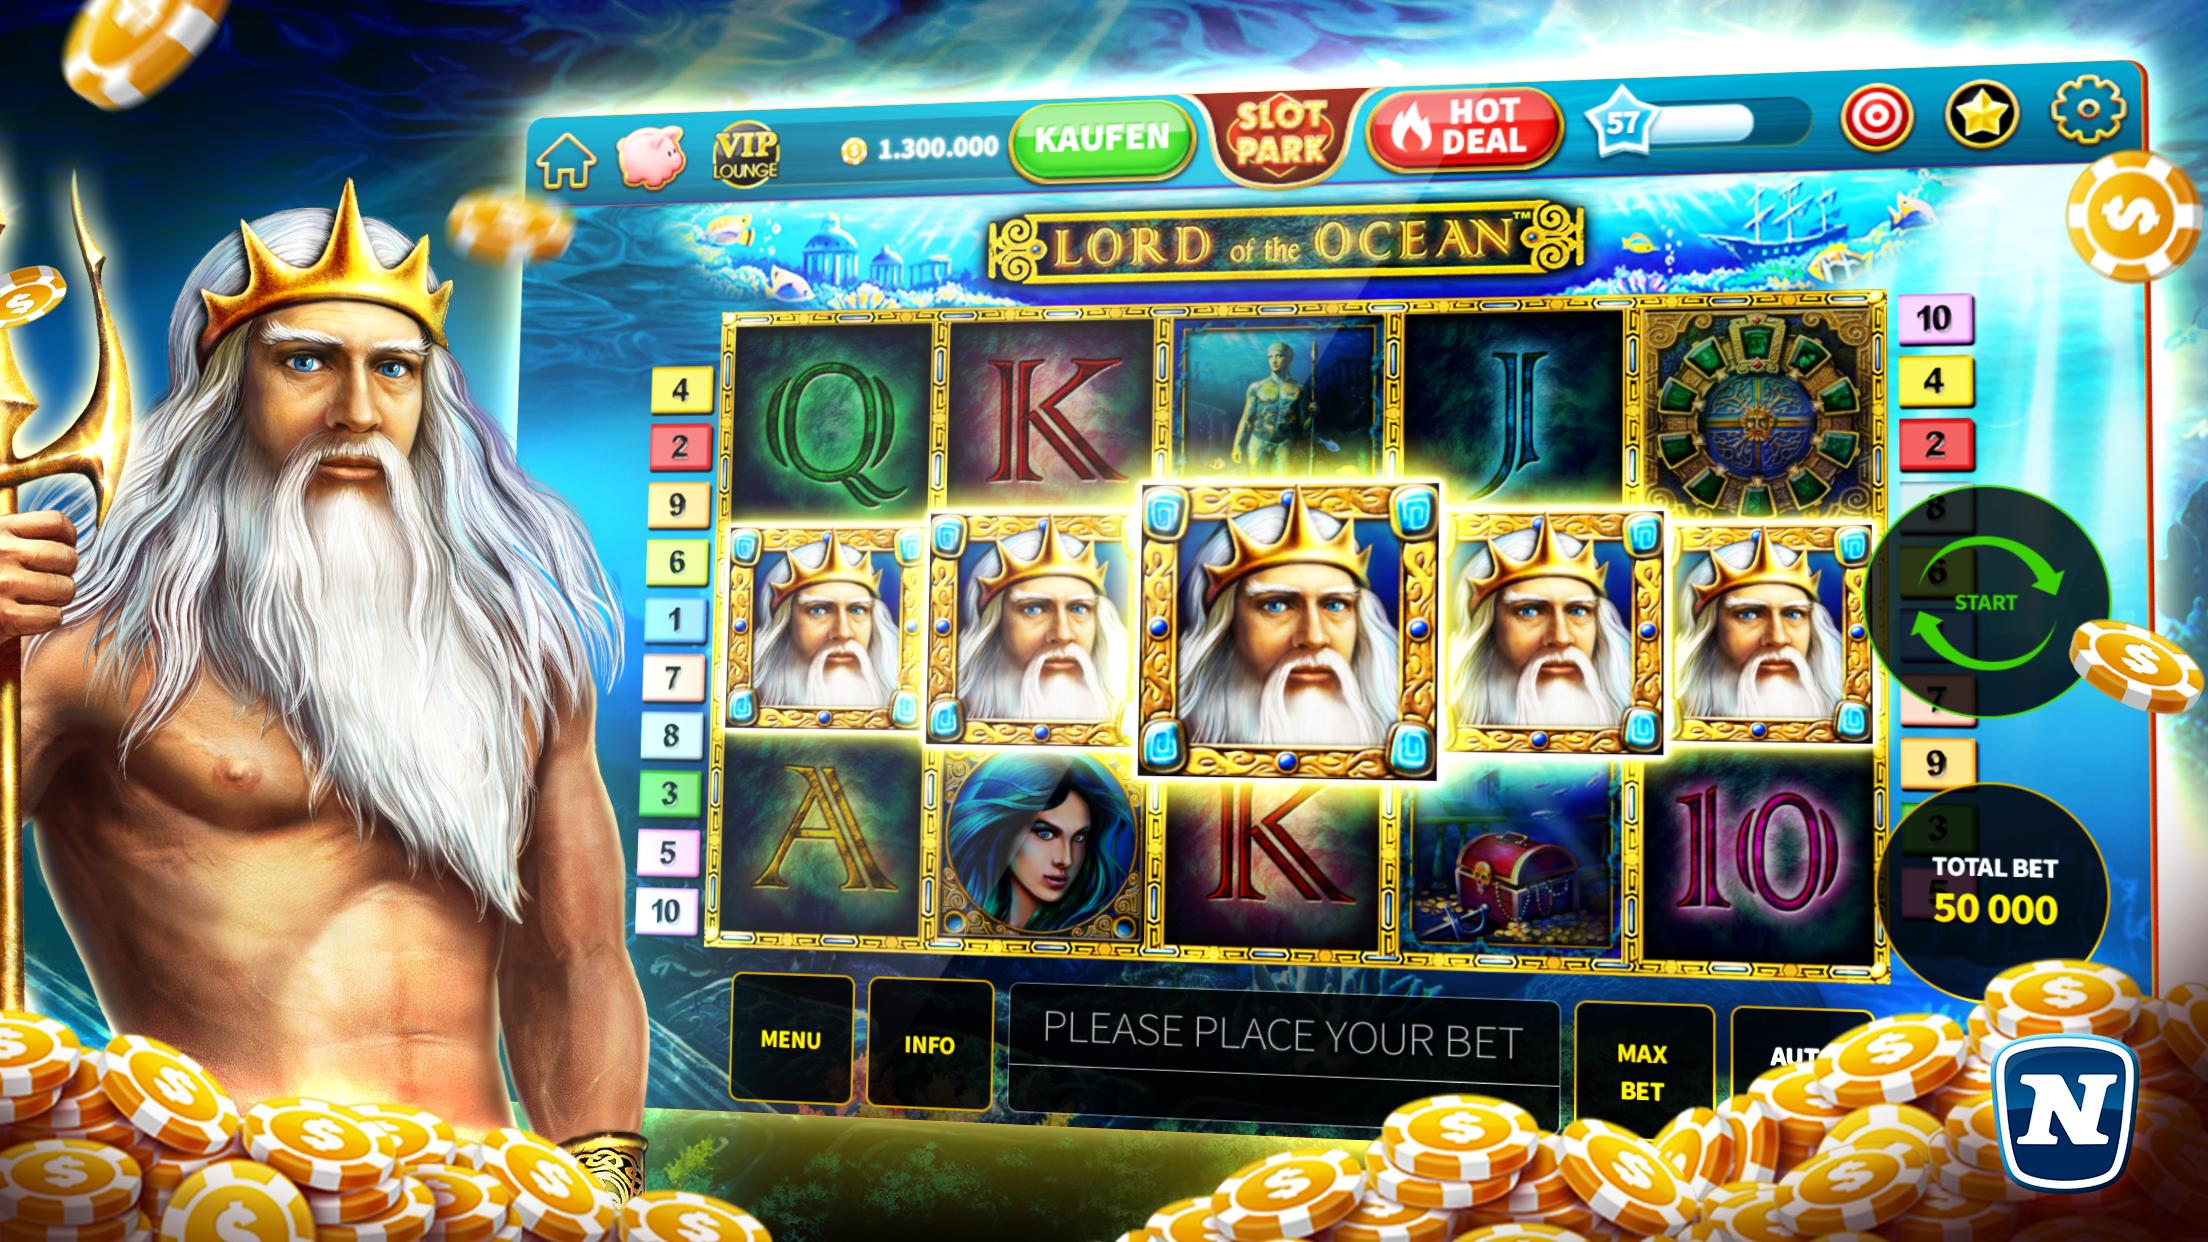 Slotpark Online Casino Games & Free Slot Machine 3.21.1 Screenshot 5